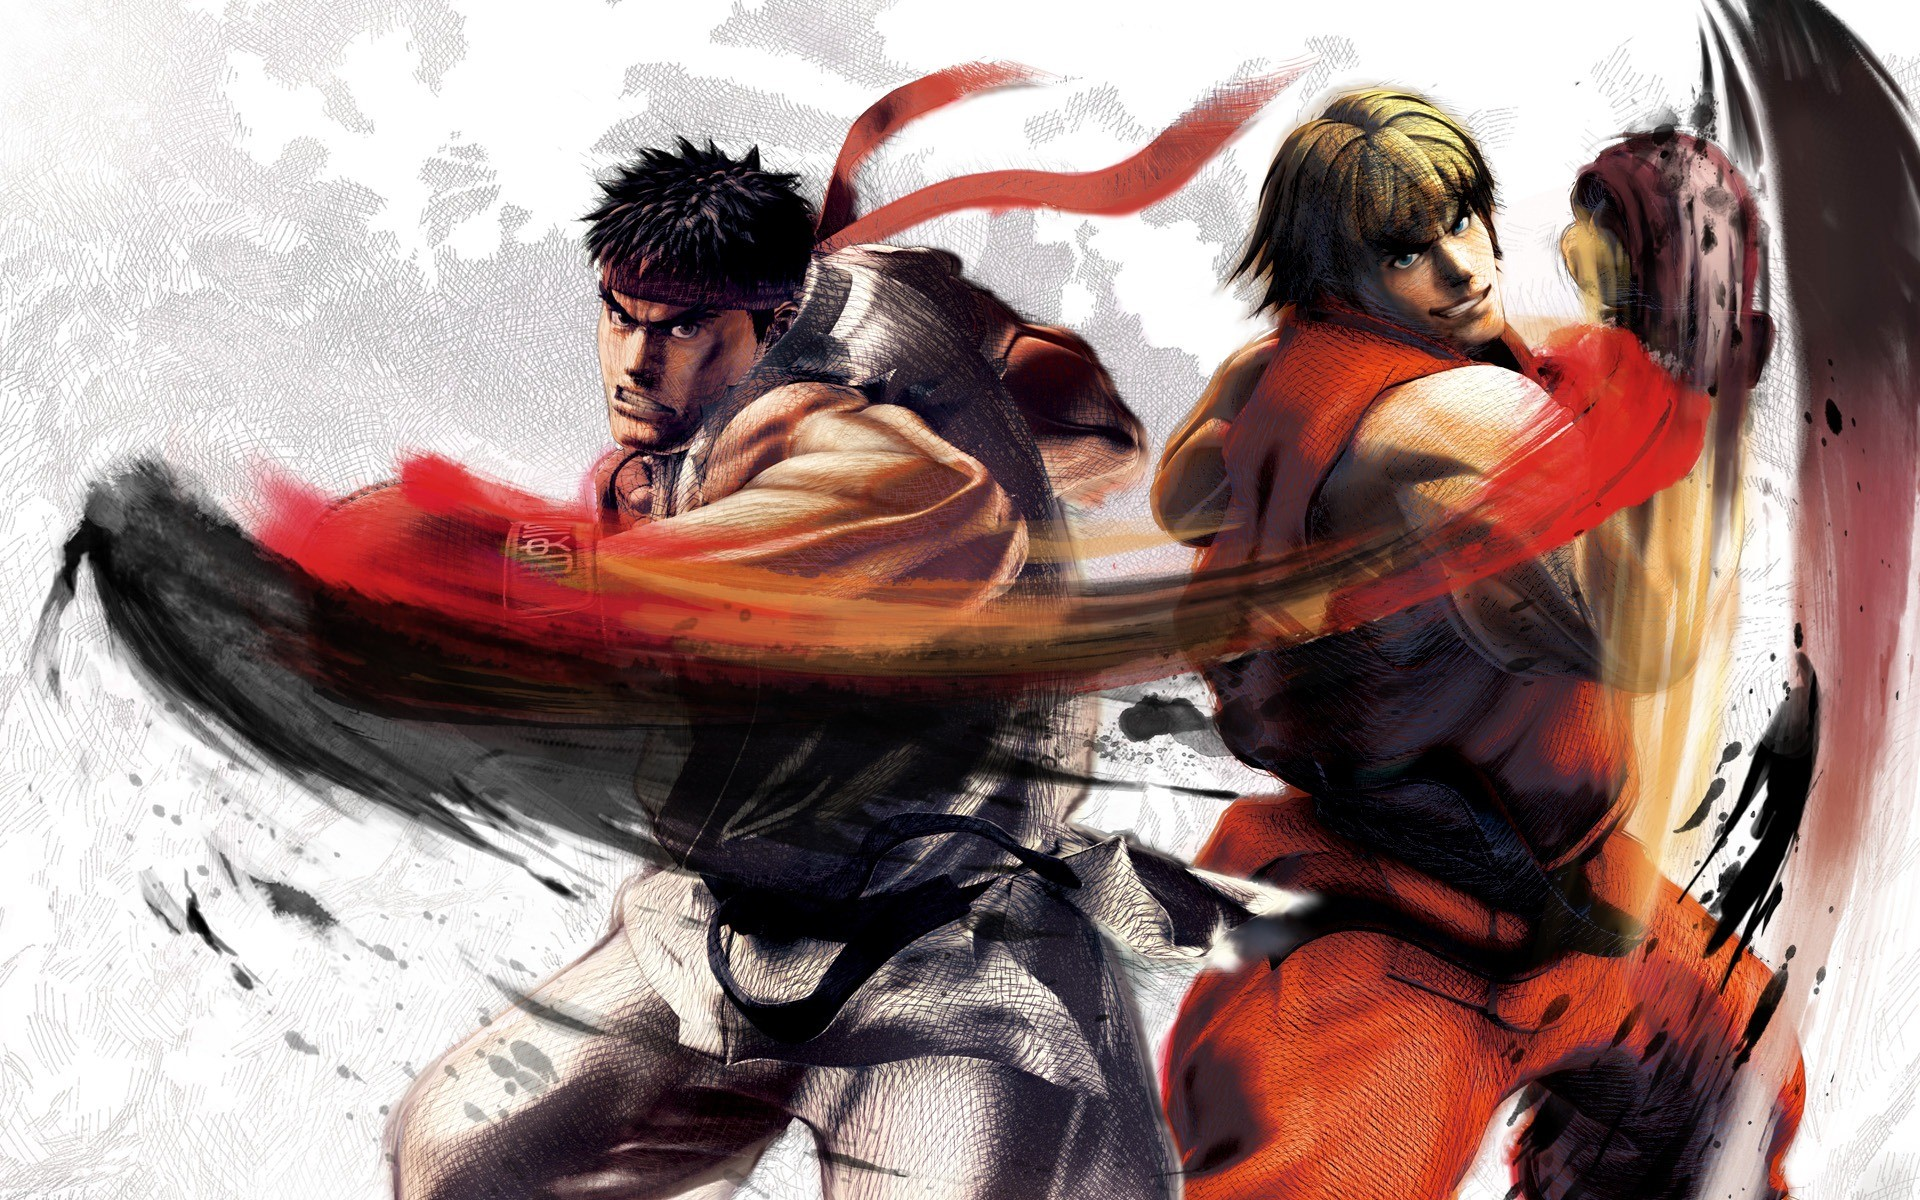 Street Fighter HD Wallpaper (68+ images)